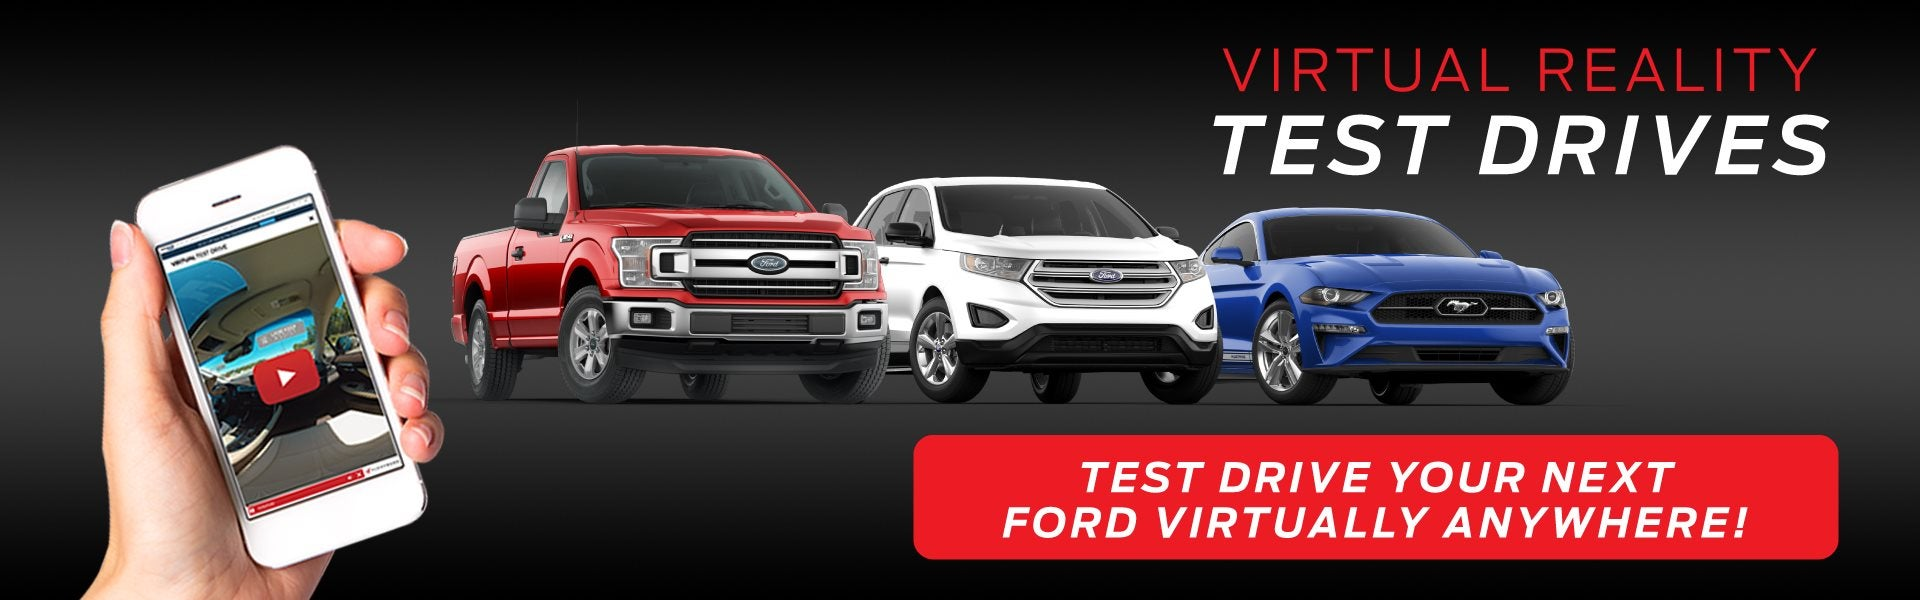 New and Used Cars for Sale, Ford Service | Tindol Ford ROUSH